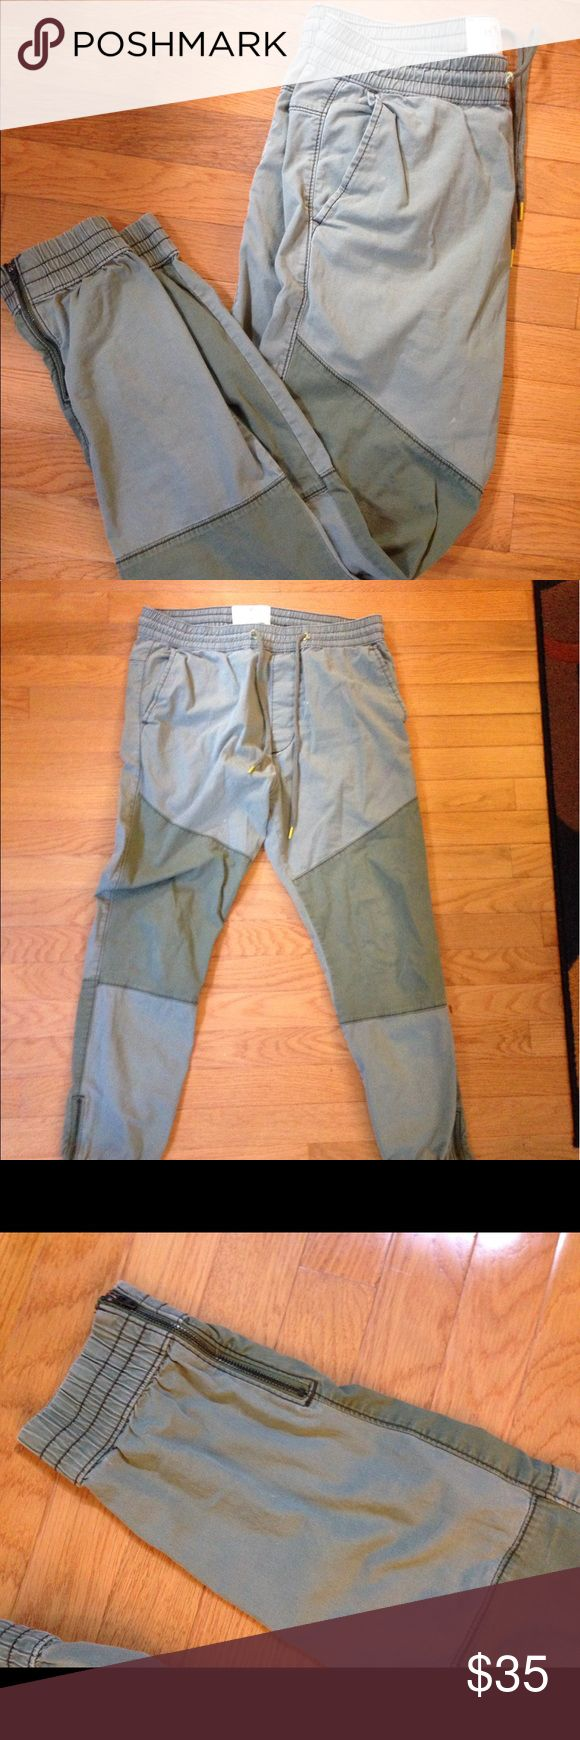 Hollister Cuffed Joggers with Ankle Zippers Slim olive joggers from Hollister. Comes with paneled legs and zippers on the ankles for an easily adjustable fit. 9/10 condition Hollister Pants Sweatpants & Joggers